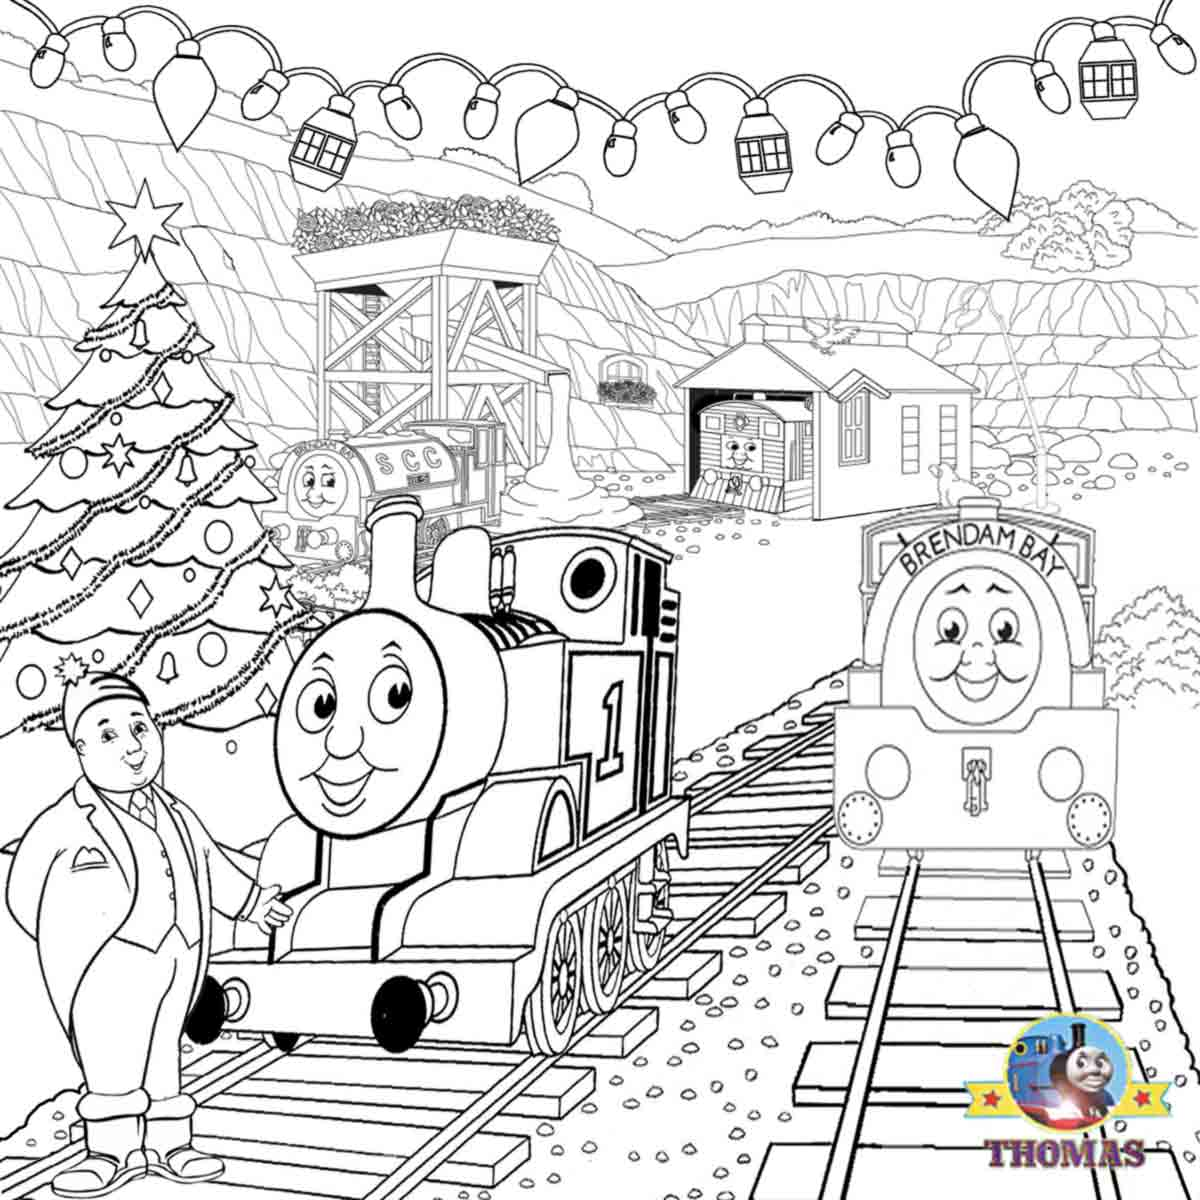 Coloring pages thomas the train - Train Color Page Coloring Pages Thomas The Train Coloring Pages Fun 20activities 20printable